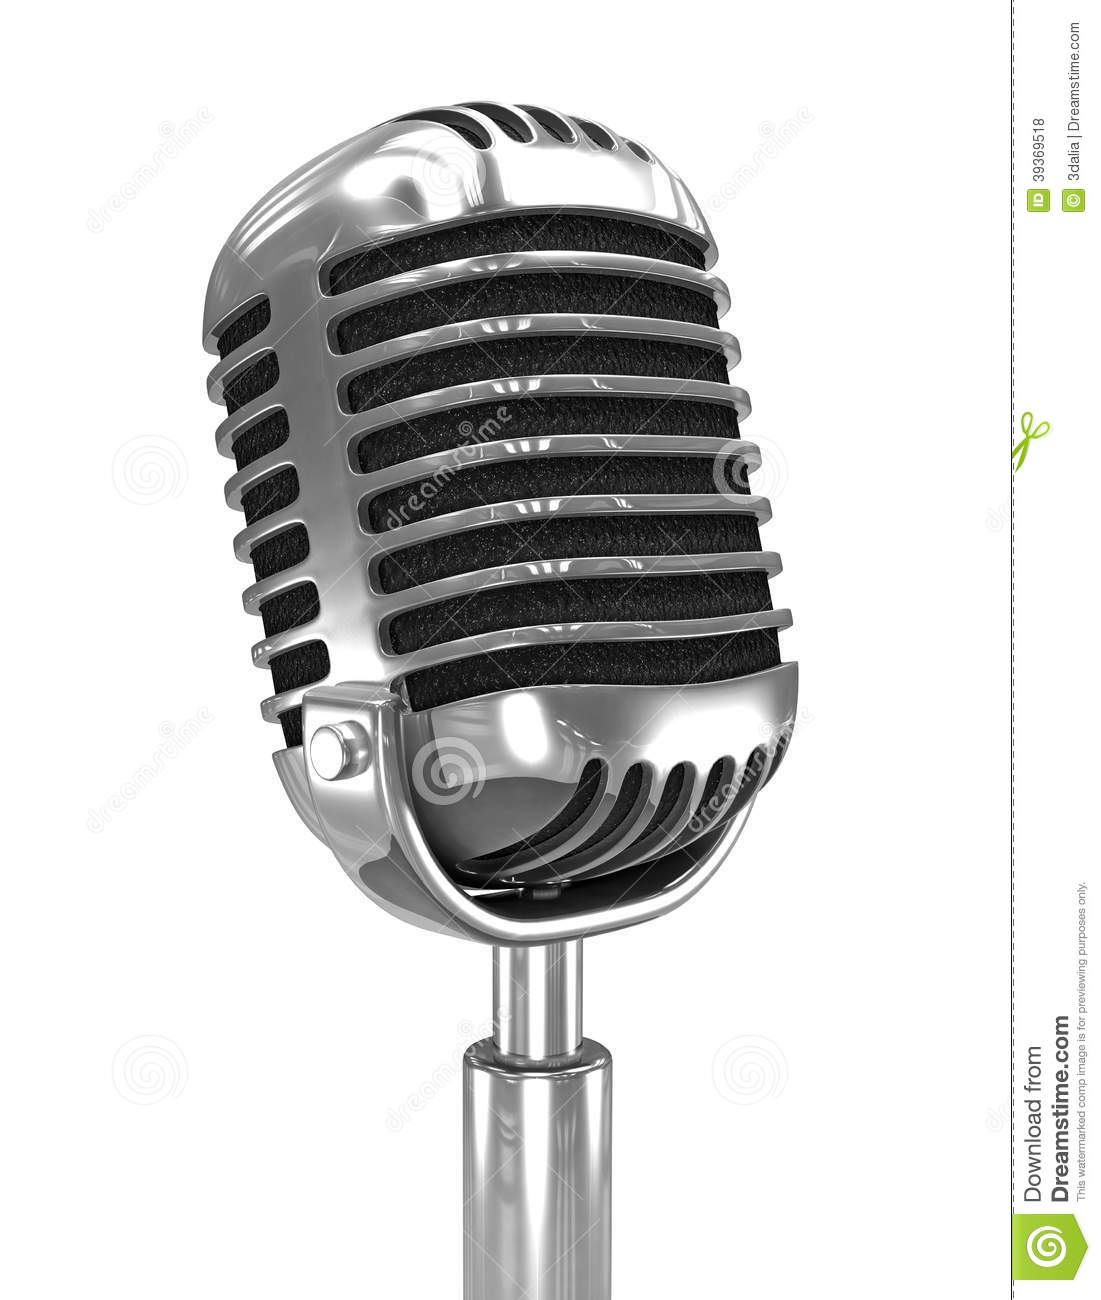 3d Old Radio Microphone Stock Illustration - Image: 39369518